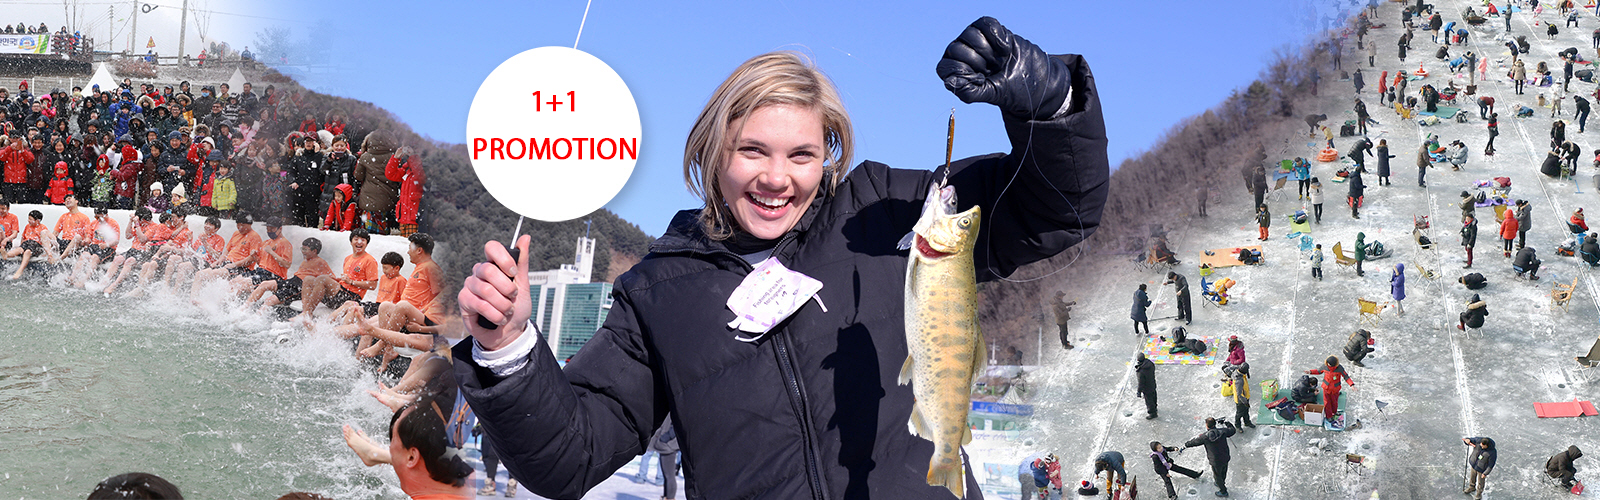 (1+1 Promotion) 2020 Hwacheon Sancheoneo Ice Fishing Festival – 1Day Shuttle Bus Tour Package (Jan 27-Feb 16) | KoreaTravelEasy